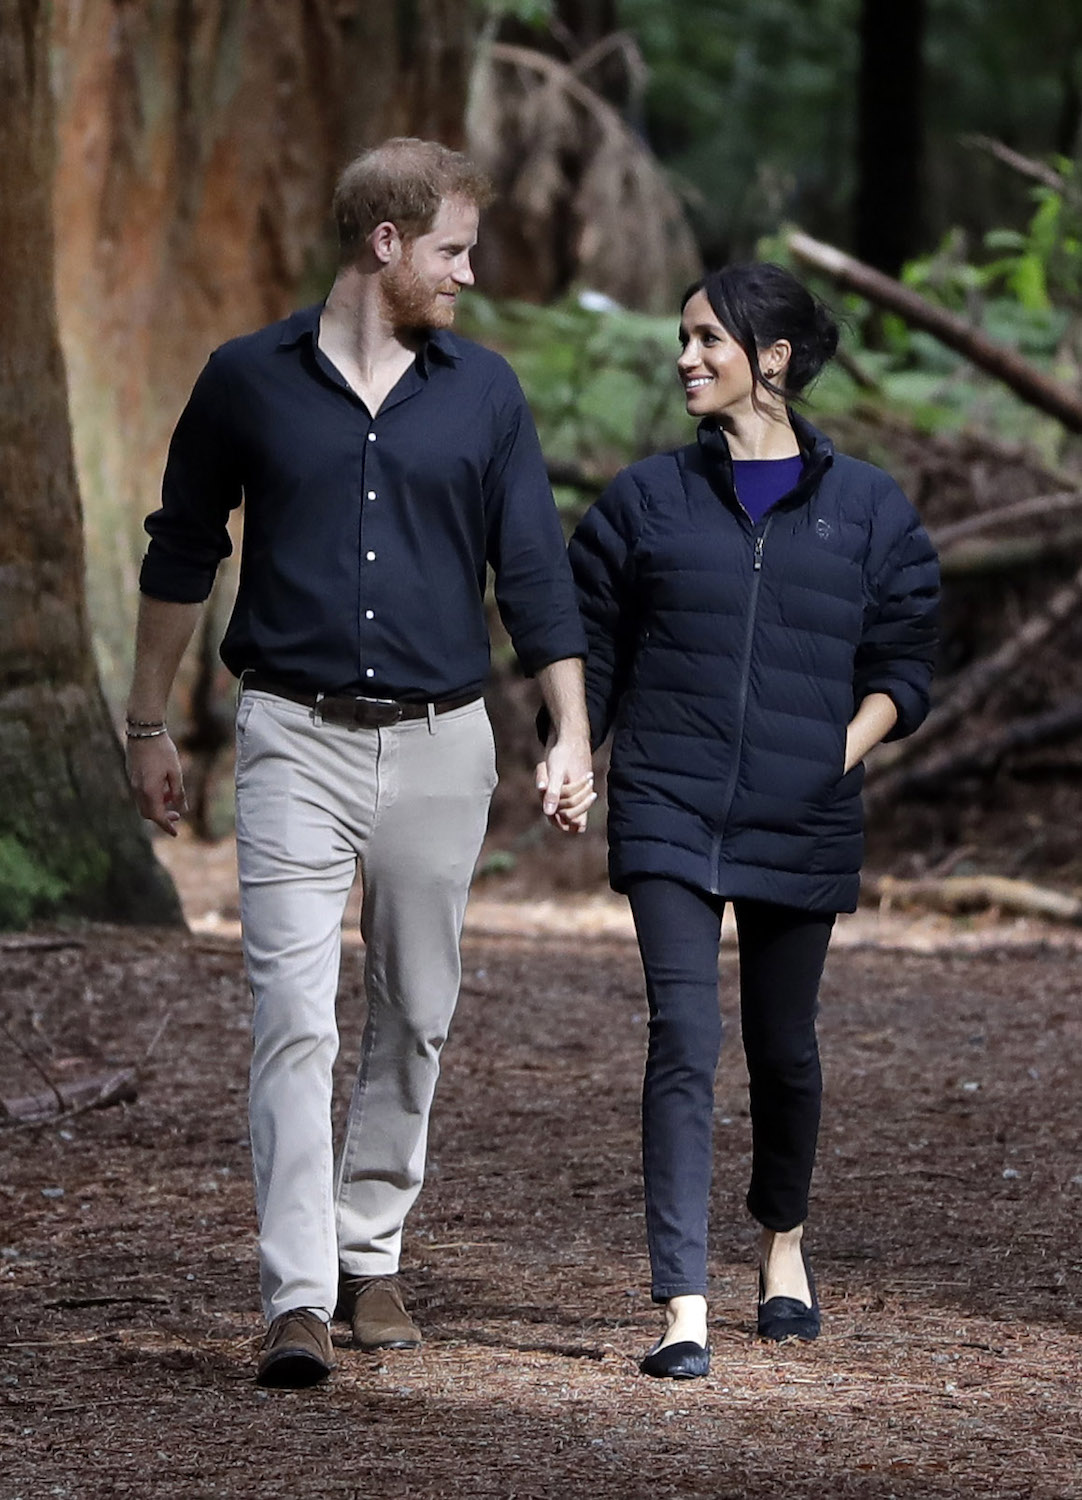 Britain's Prince Harry and Meghan, Duchess of Sussex walk through a Redwoods forest in Rotorua, New Zealand, Wednesday, Oct. 31, 2018. Prince Harry and his wife Meghan are on the final day of their 16-day tour of Australia, New Zealand and the South Pacific. (AP Photo/Kirsty Wigglesworth,Pool)